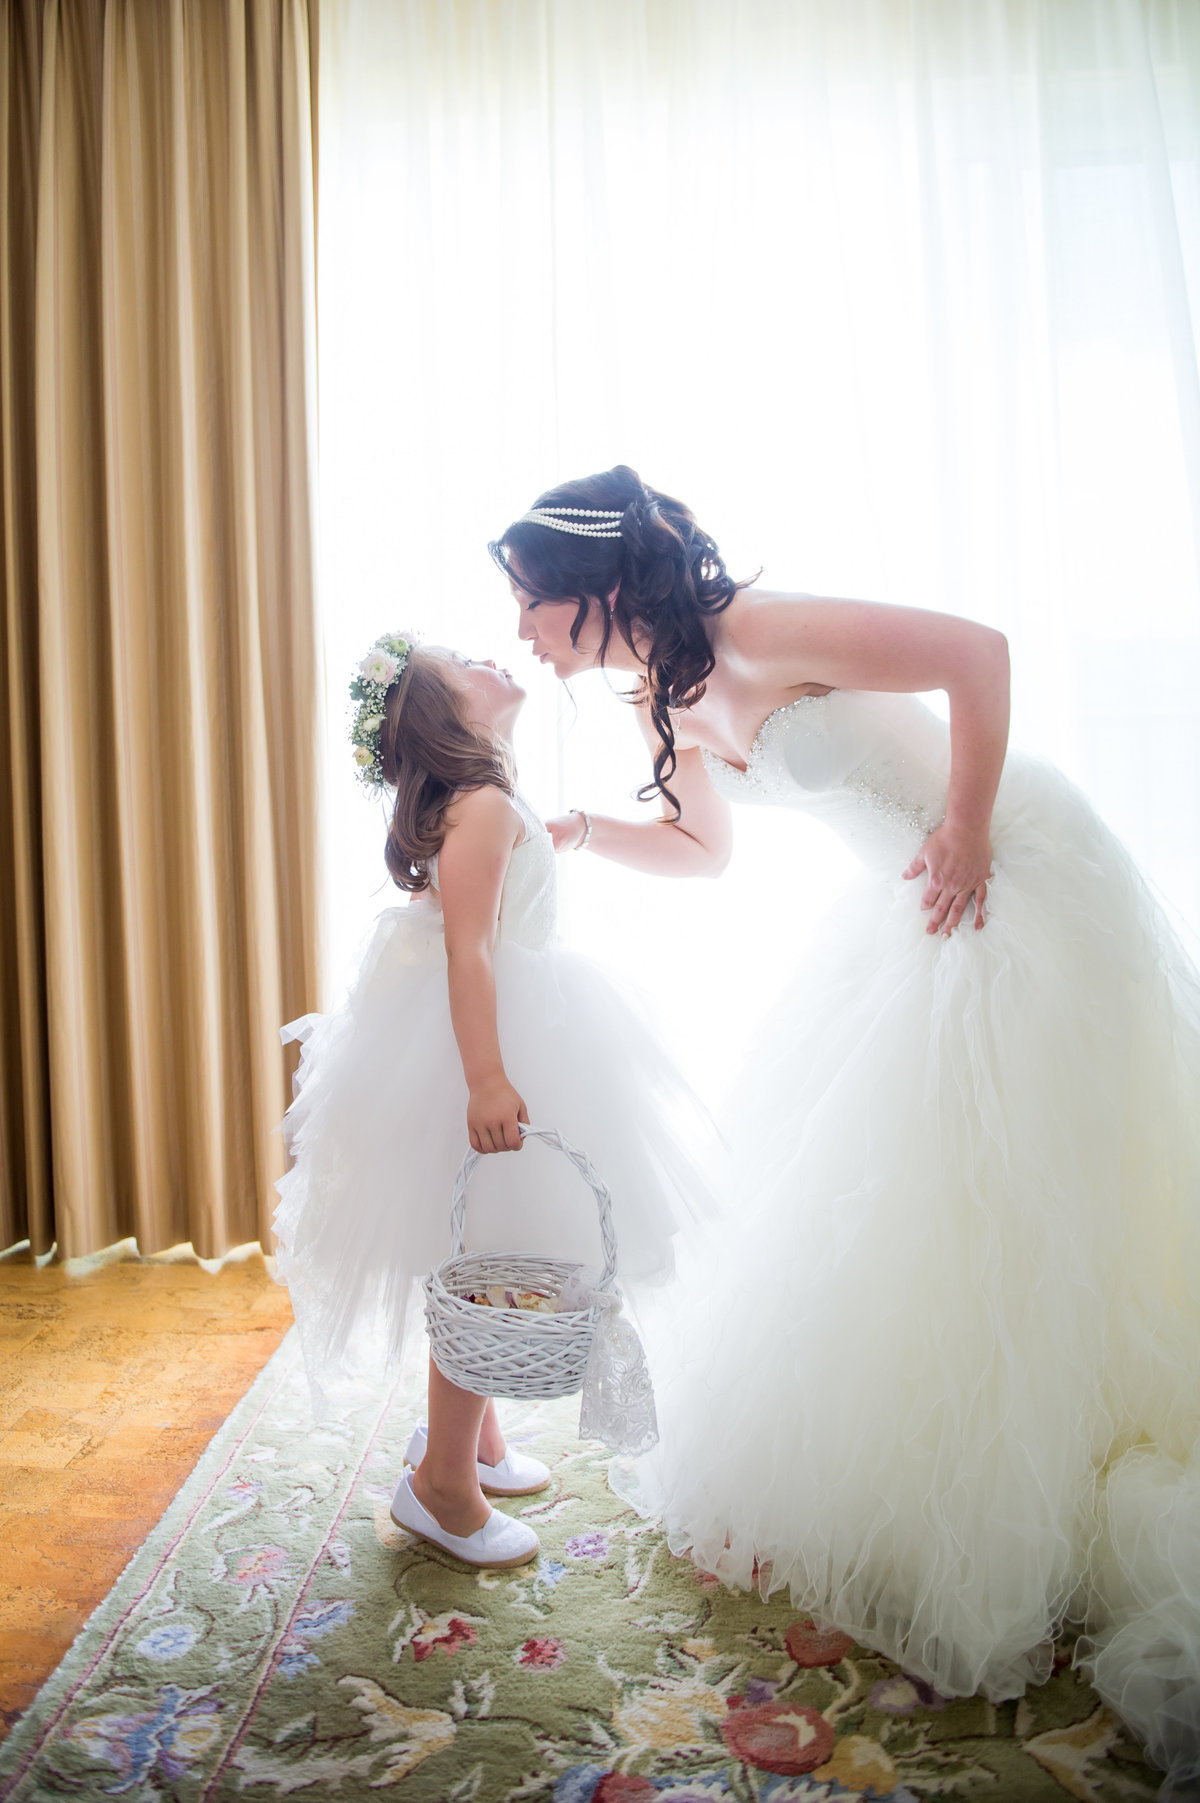 Suzanne le stage Photography- Hotel Eldorado Wedding - Kelowna Weddings-2255